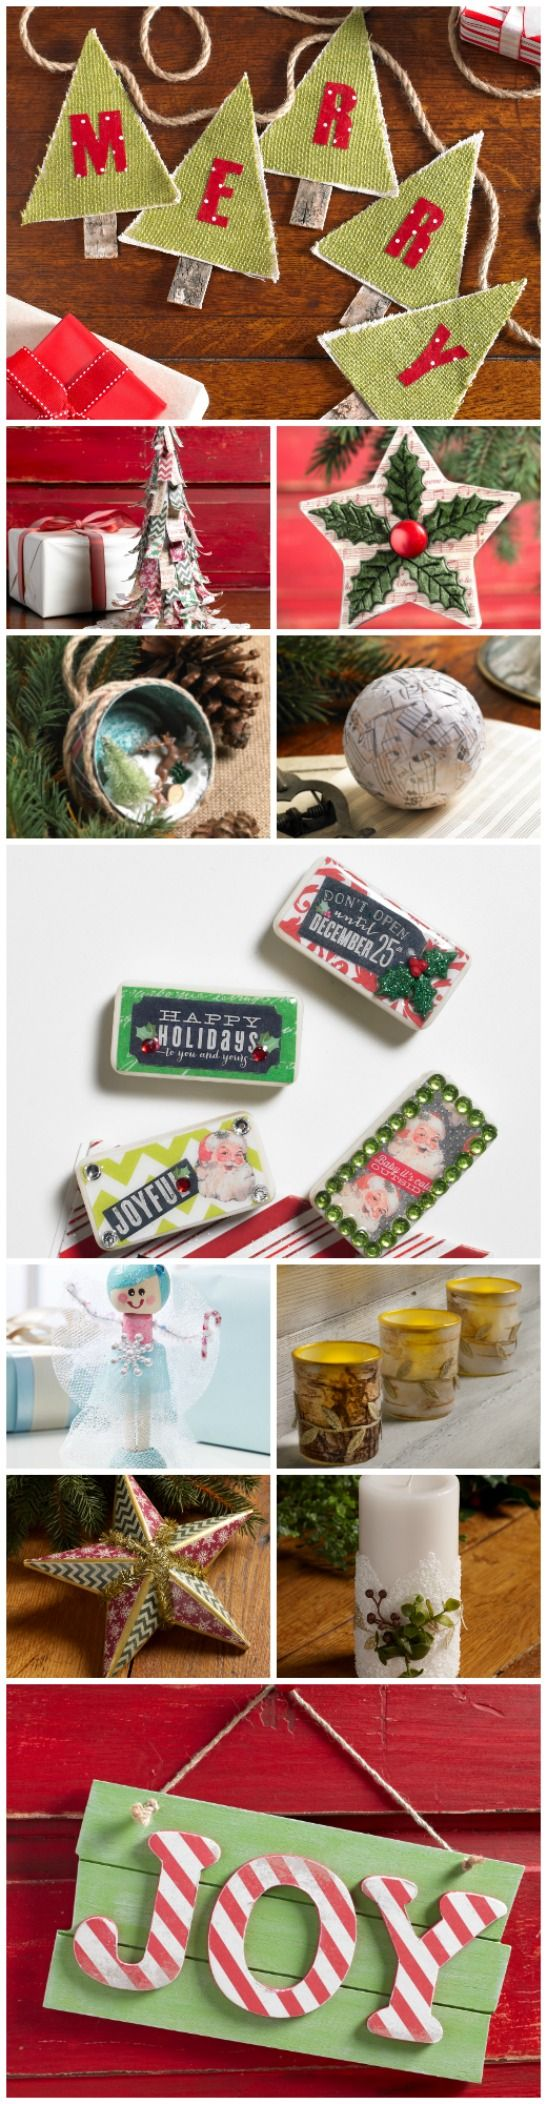 1000 images about christmas holiday diy projects on for Best bazaar crafts to make and sell